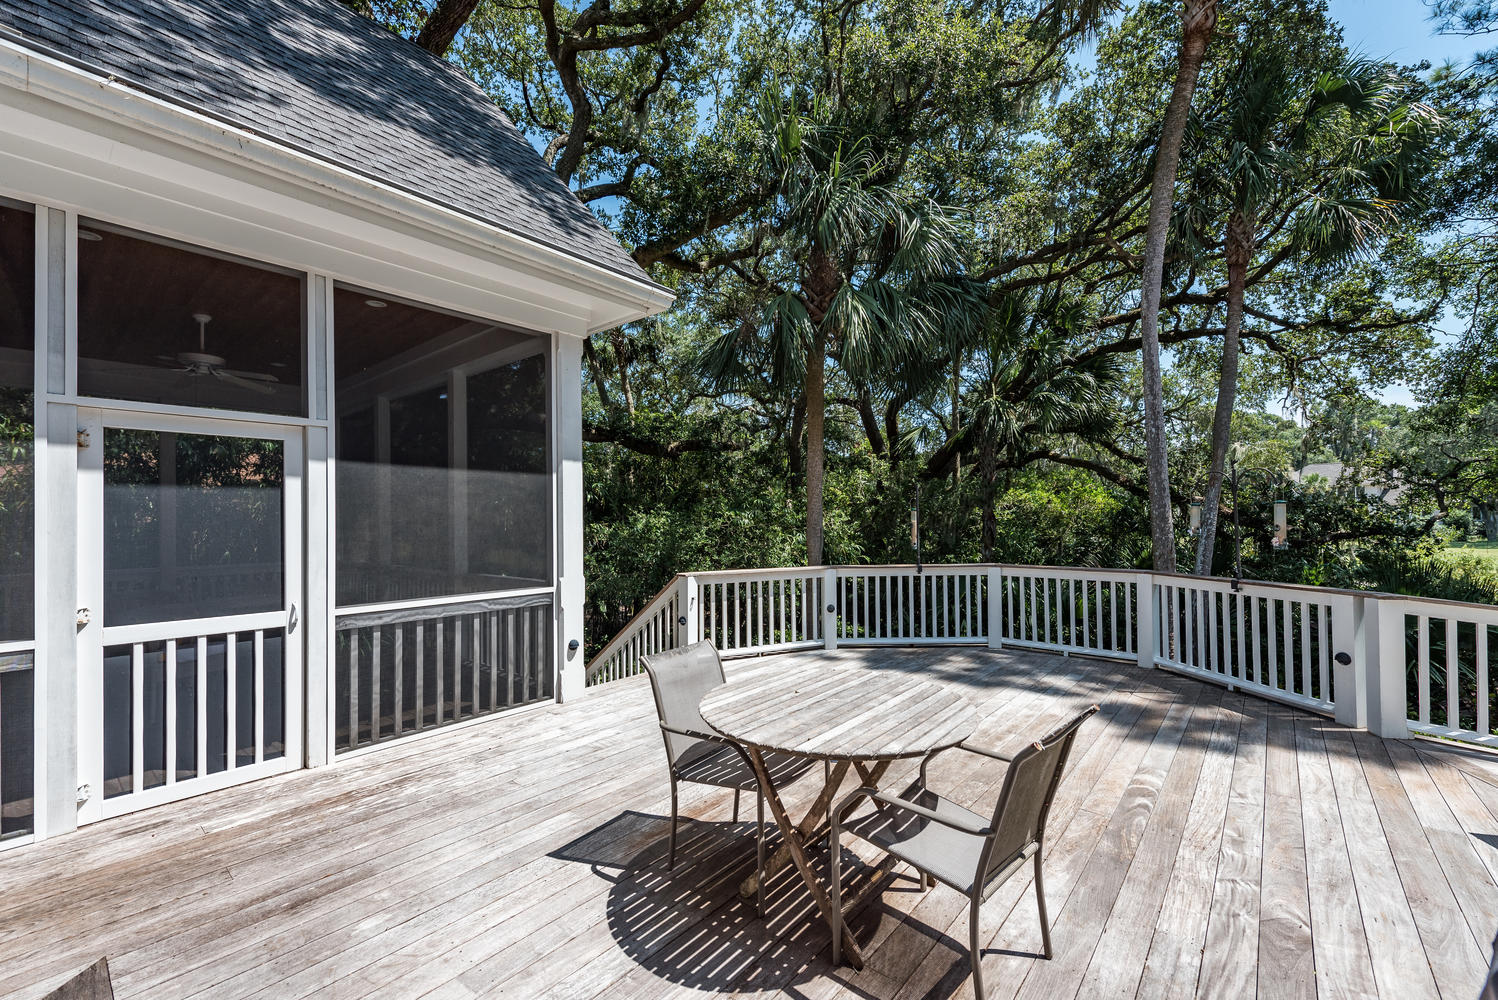 Seabrook Island Homes For Sale - 2507 The Bent Twig, Seabrook Island, SC - 37